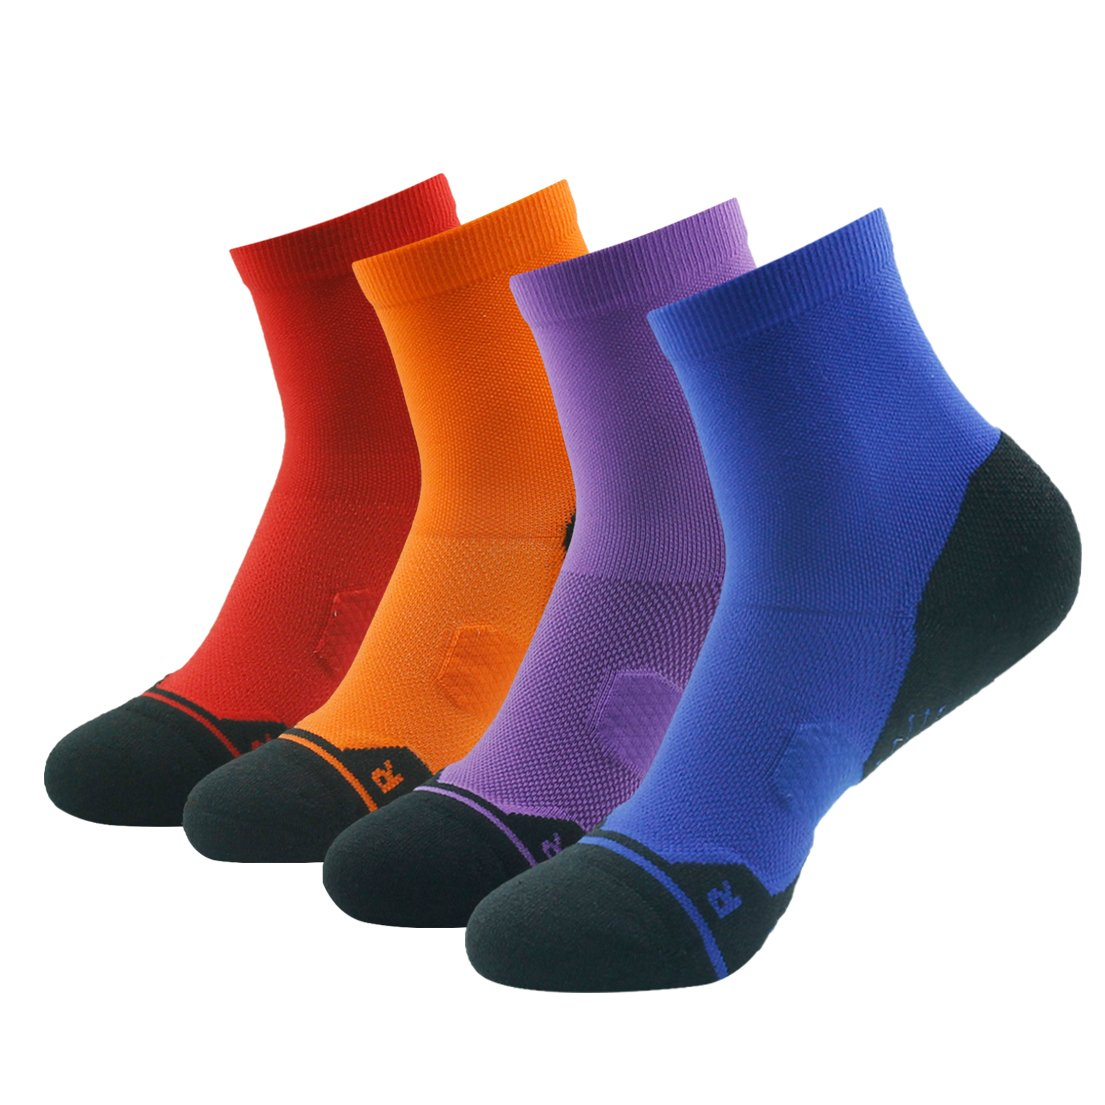 4 Pair Purple&orange&navy bluee&red Running Socks Support, HUSO Men Women High Performance Arch Compression Cushioned Quarter Socks 1,2,3,4,6 Pairs